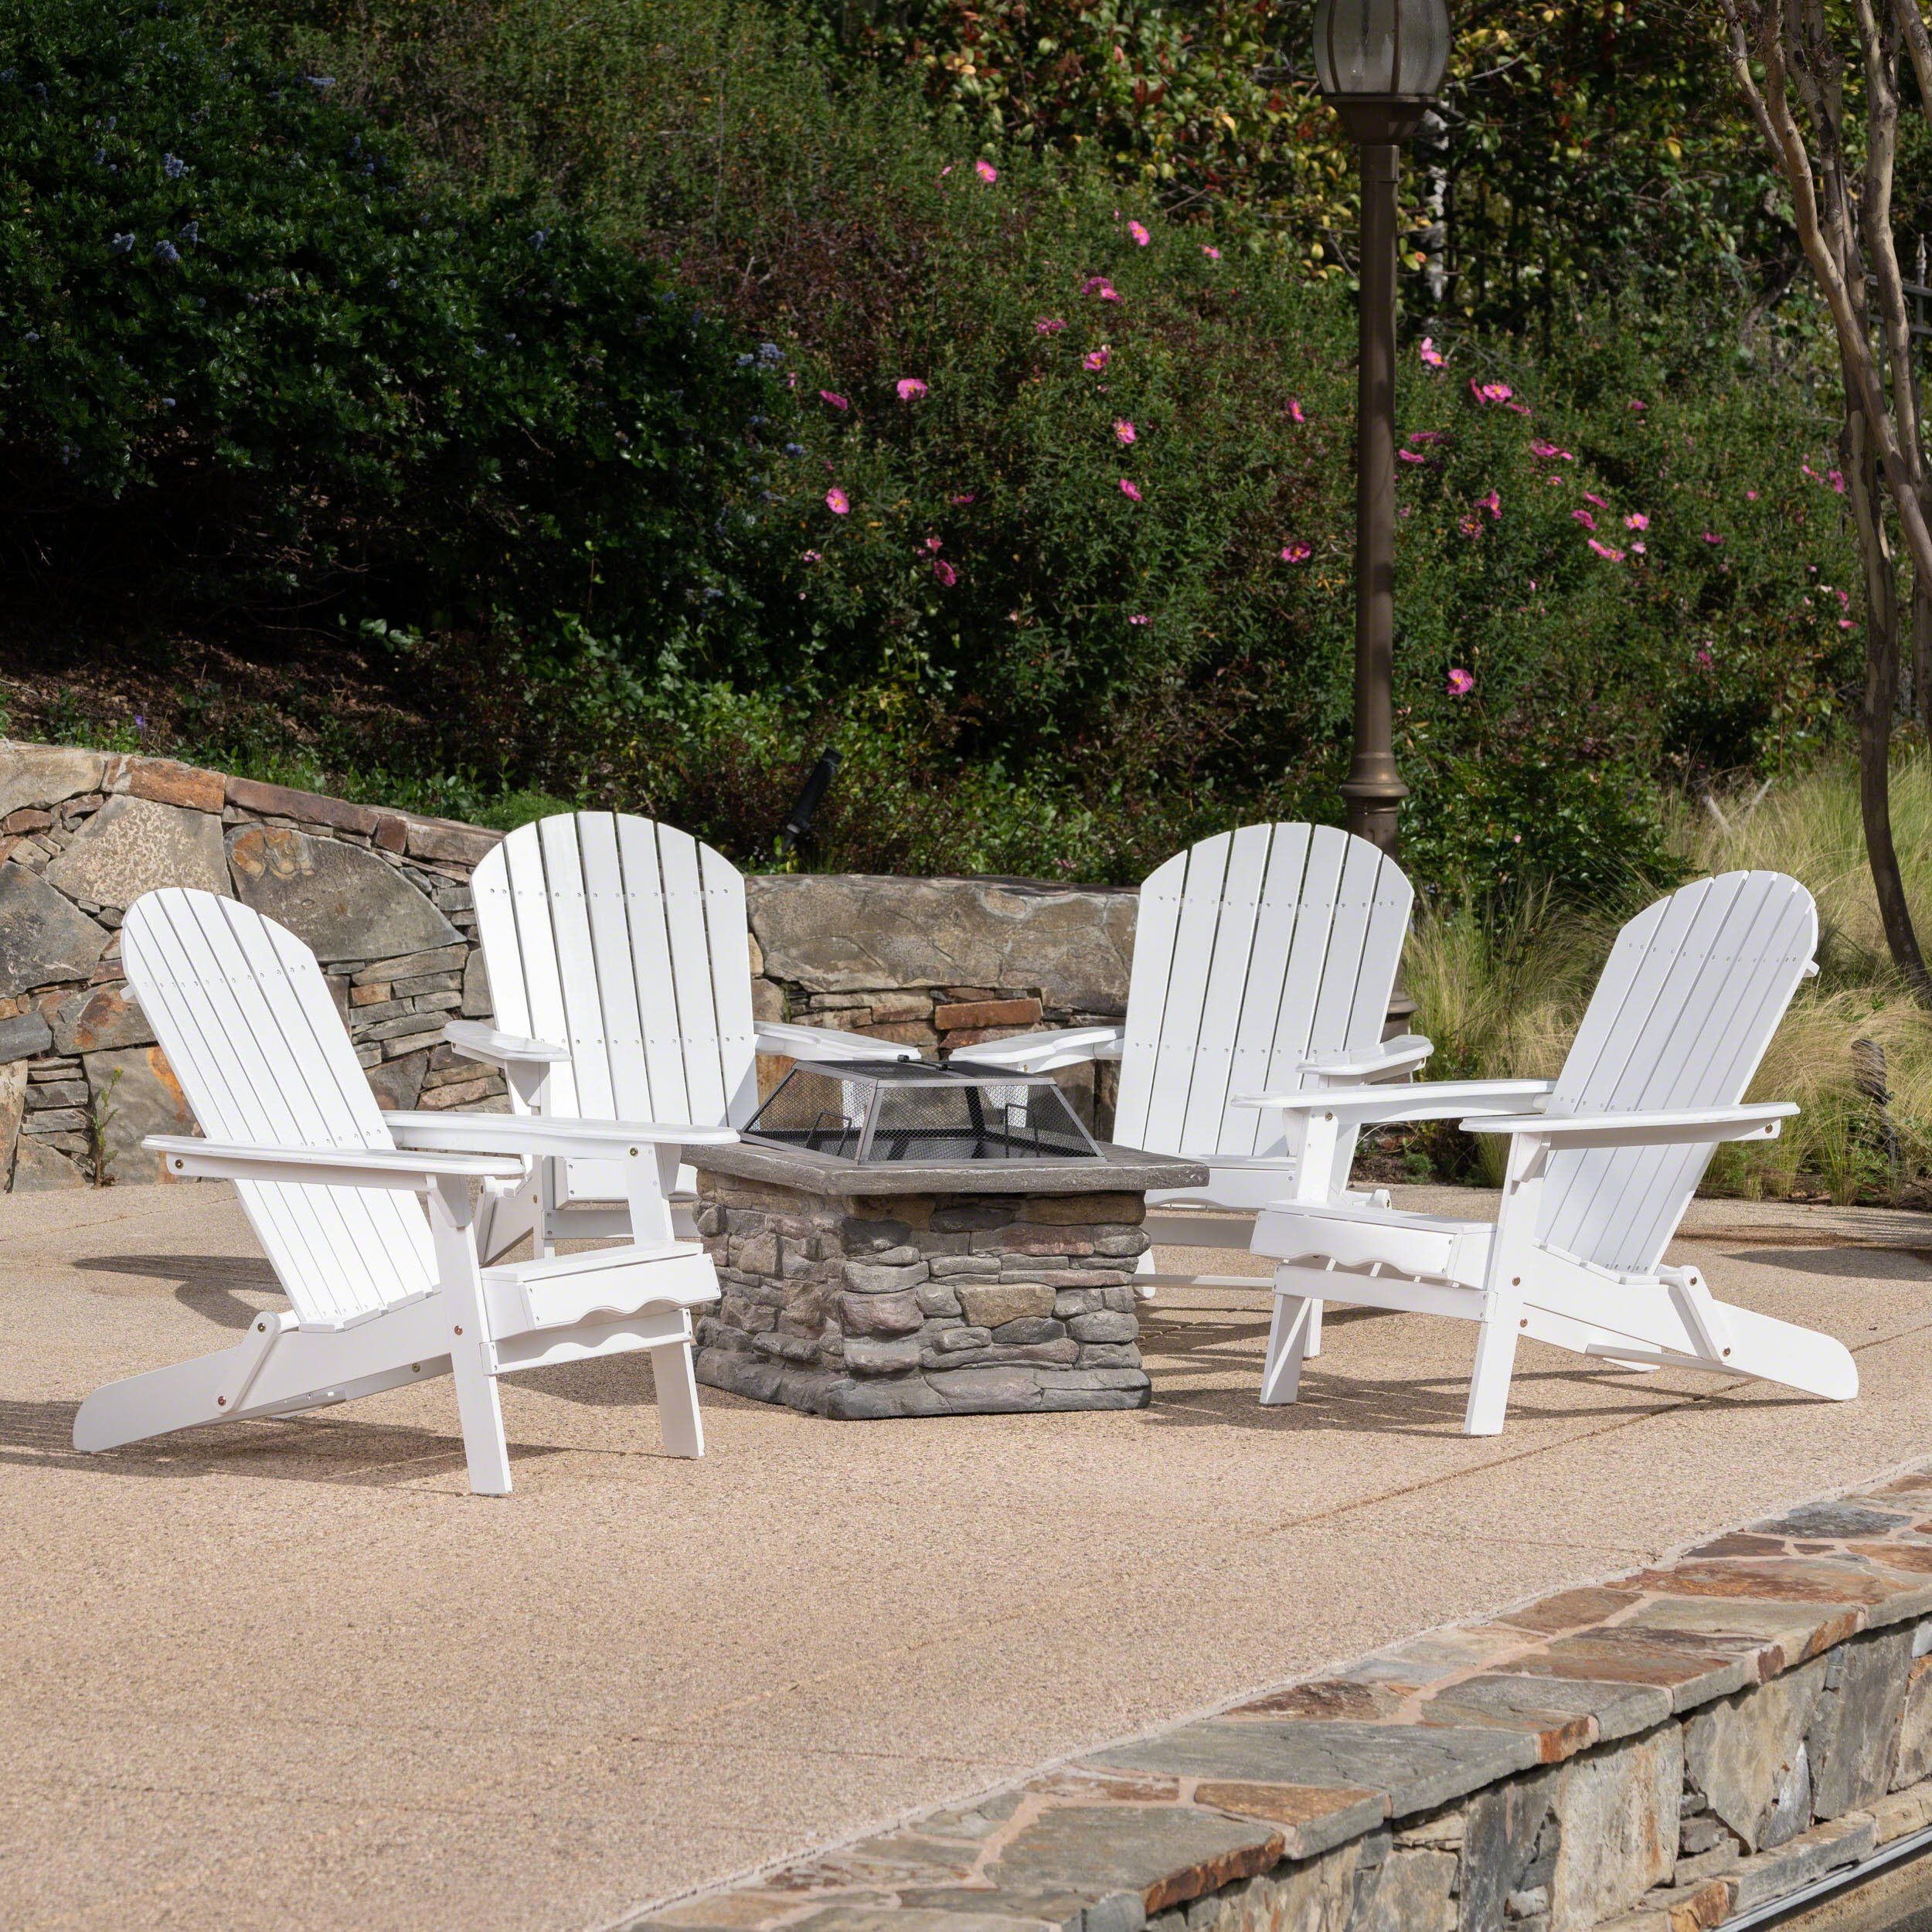 Benson Outdoor 5 Piece Acacia Wood/Light Weight Concrete Adirondack Chair Set with Fire Pit, White Finish and Natural Stone Finish by Great Deal Furniture